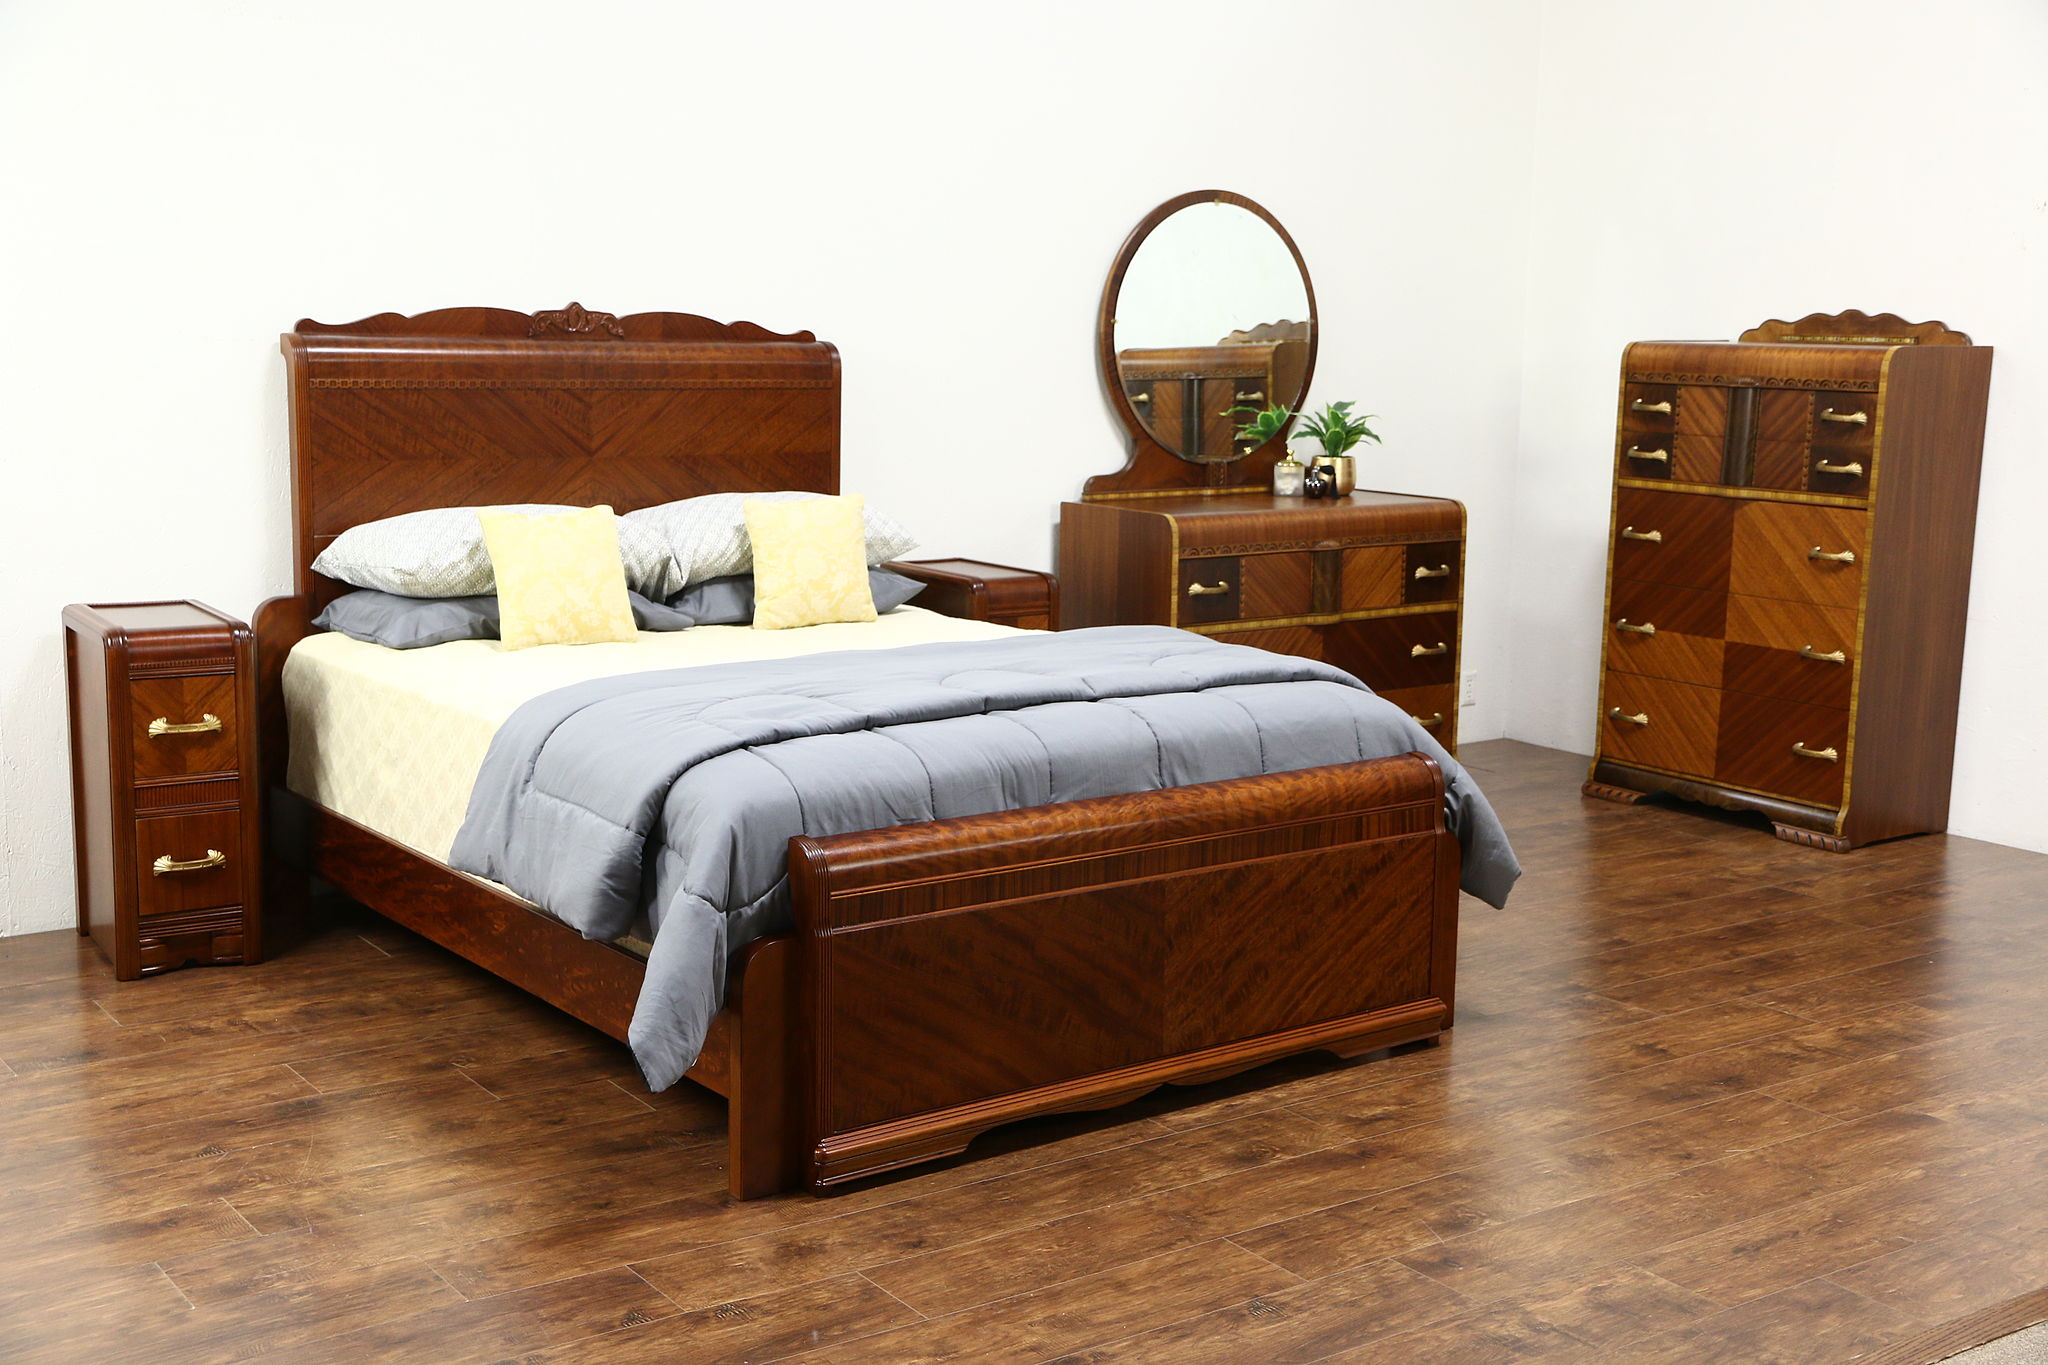 Art Deco Waterfall Vintage 5 Pc. Bedroom Set, Queen Bed